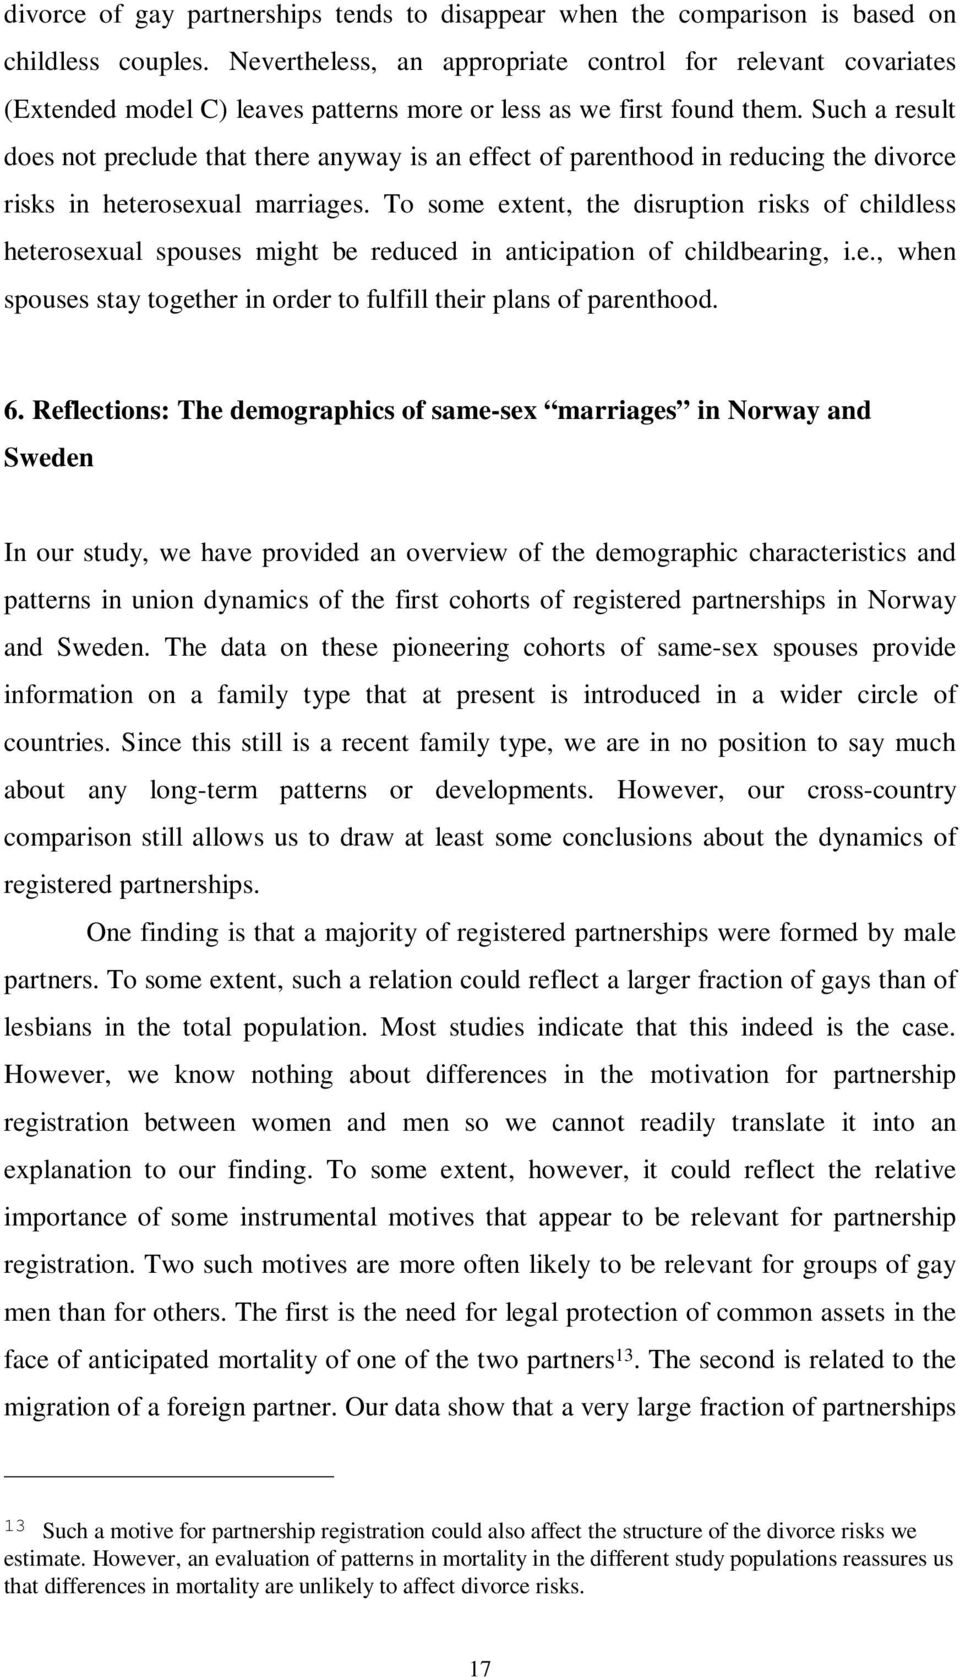 Such a result does not preclude that there anyway is an effect of parenthood in reducing the divorce risks in heterosexual marriages.